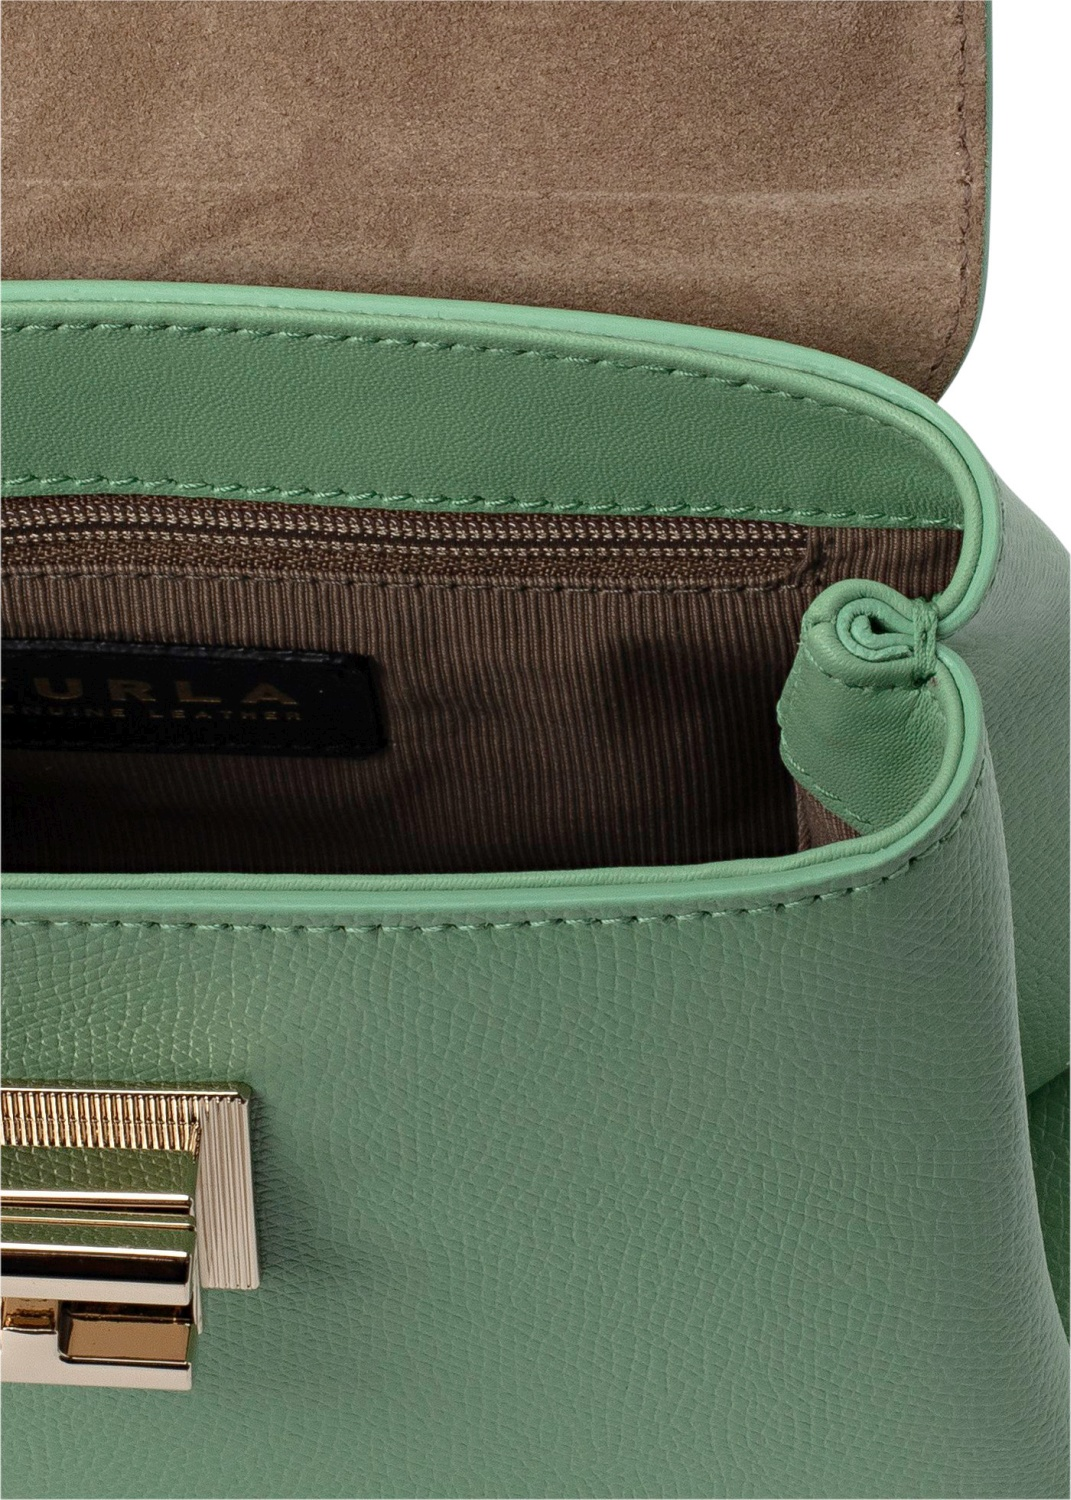 FURLA 1927 MINI TOP HANDLE image number 3